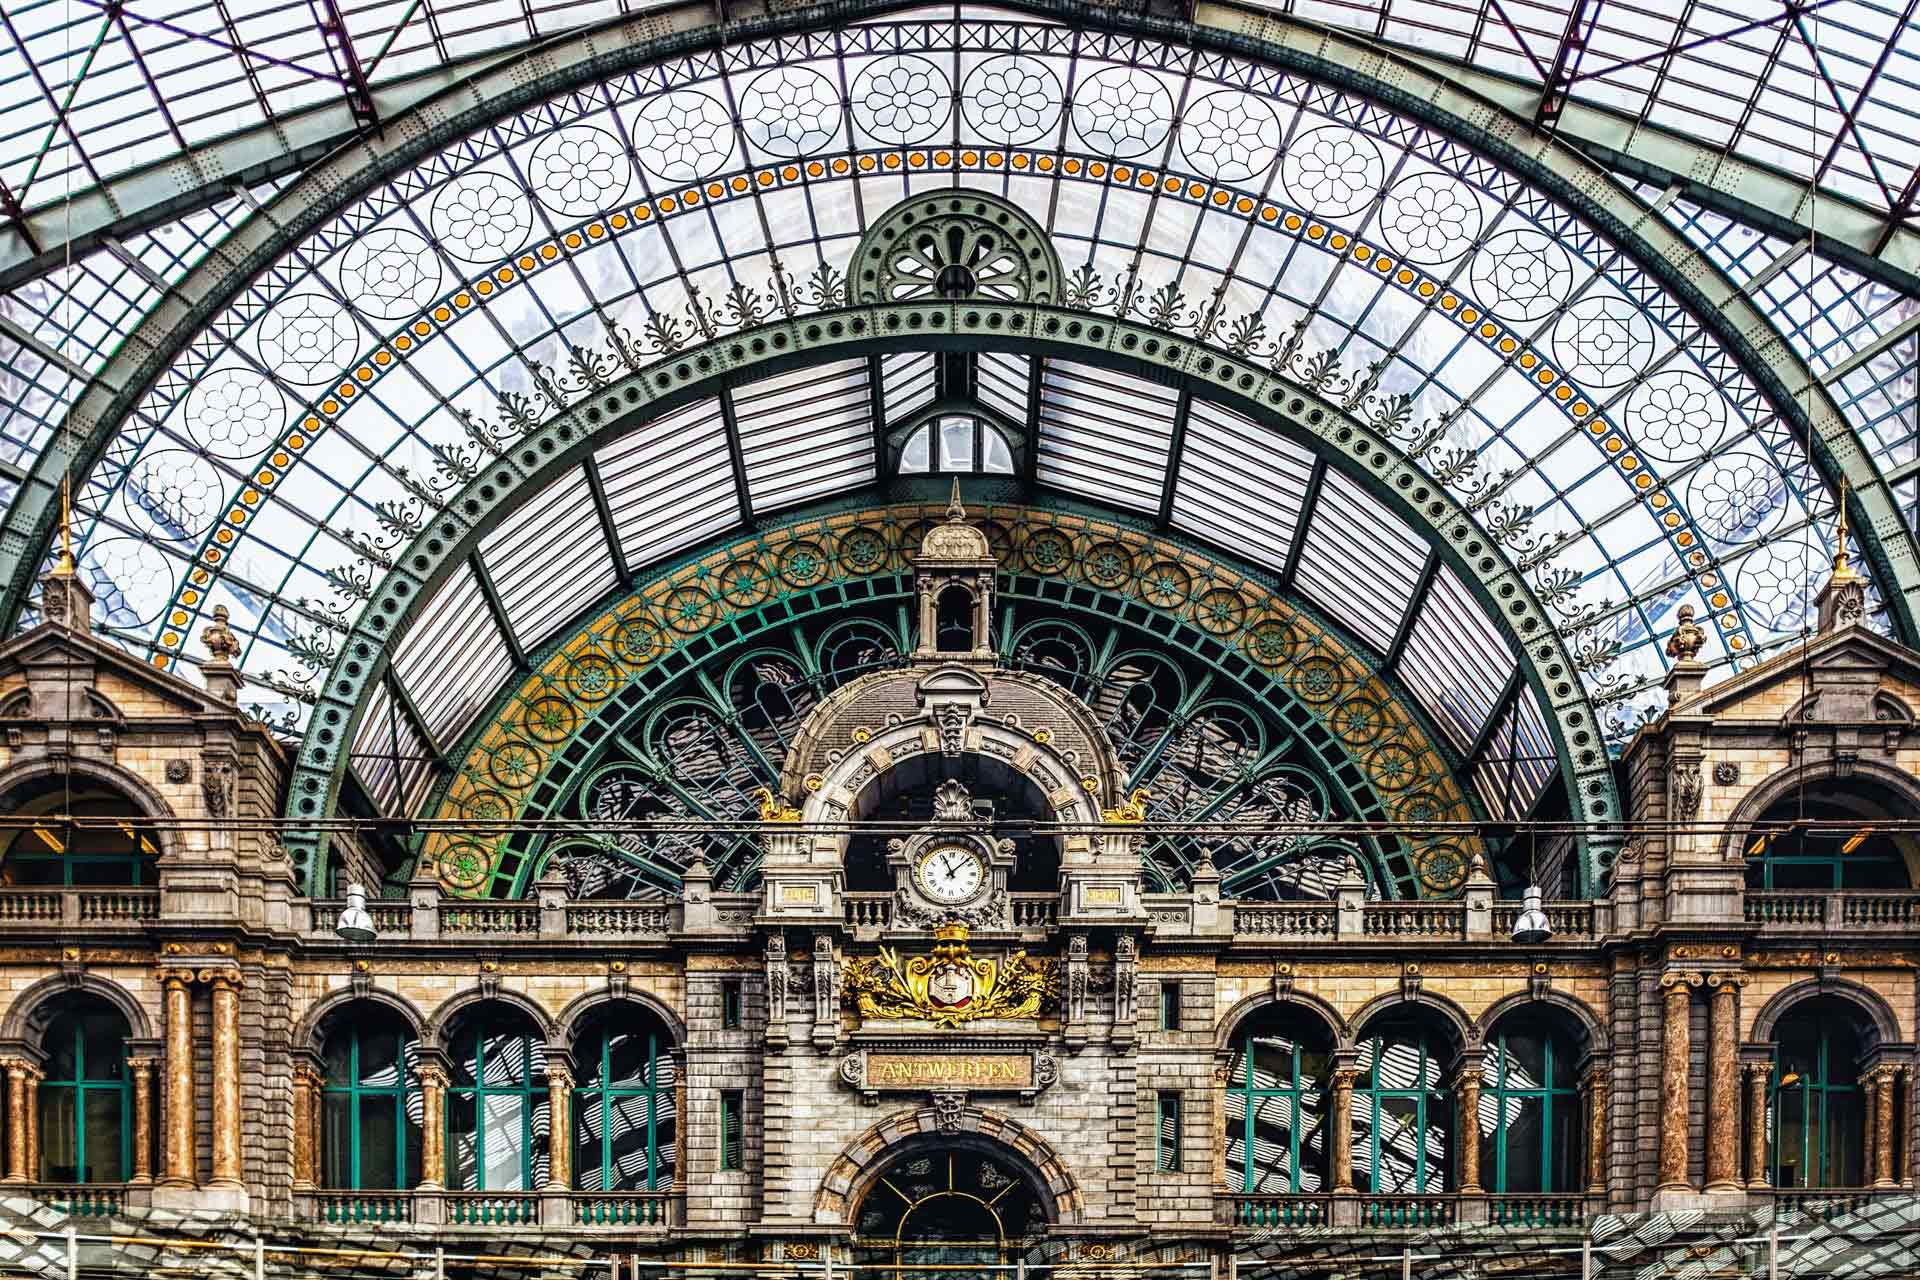 Antwerp train station clock tower Antwerp Belgium